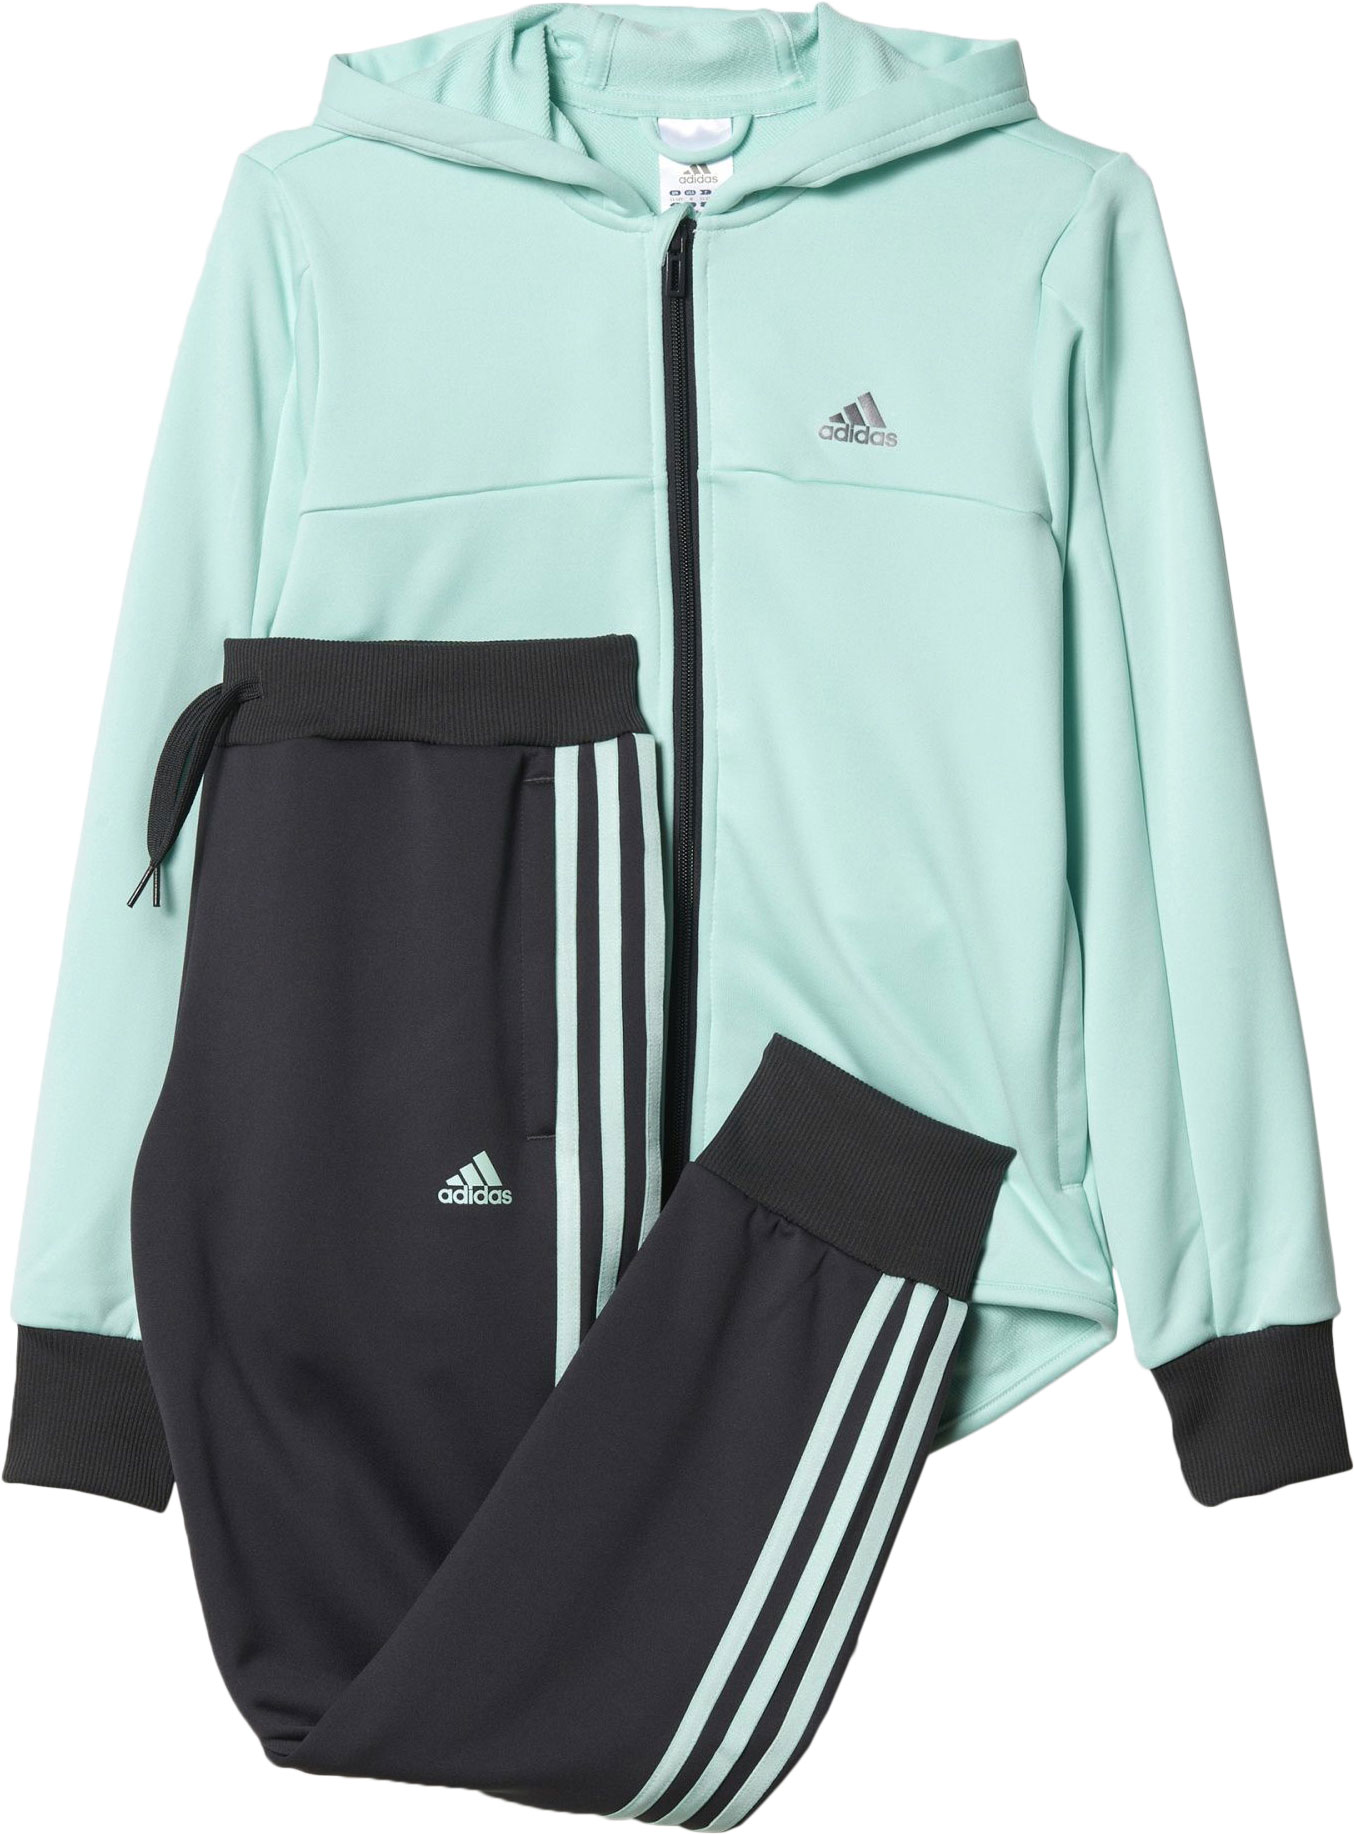 M/ädchen adidas Hooded Polyester Tracksuit